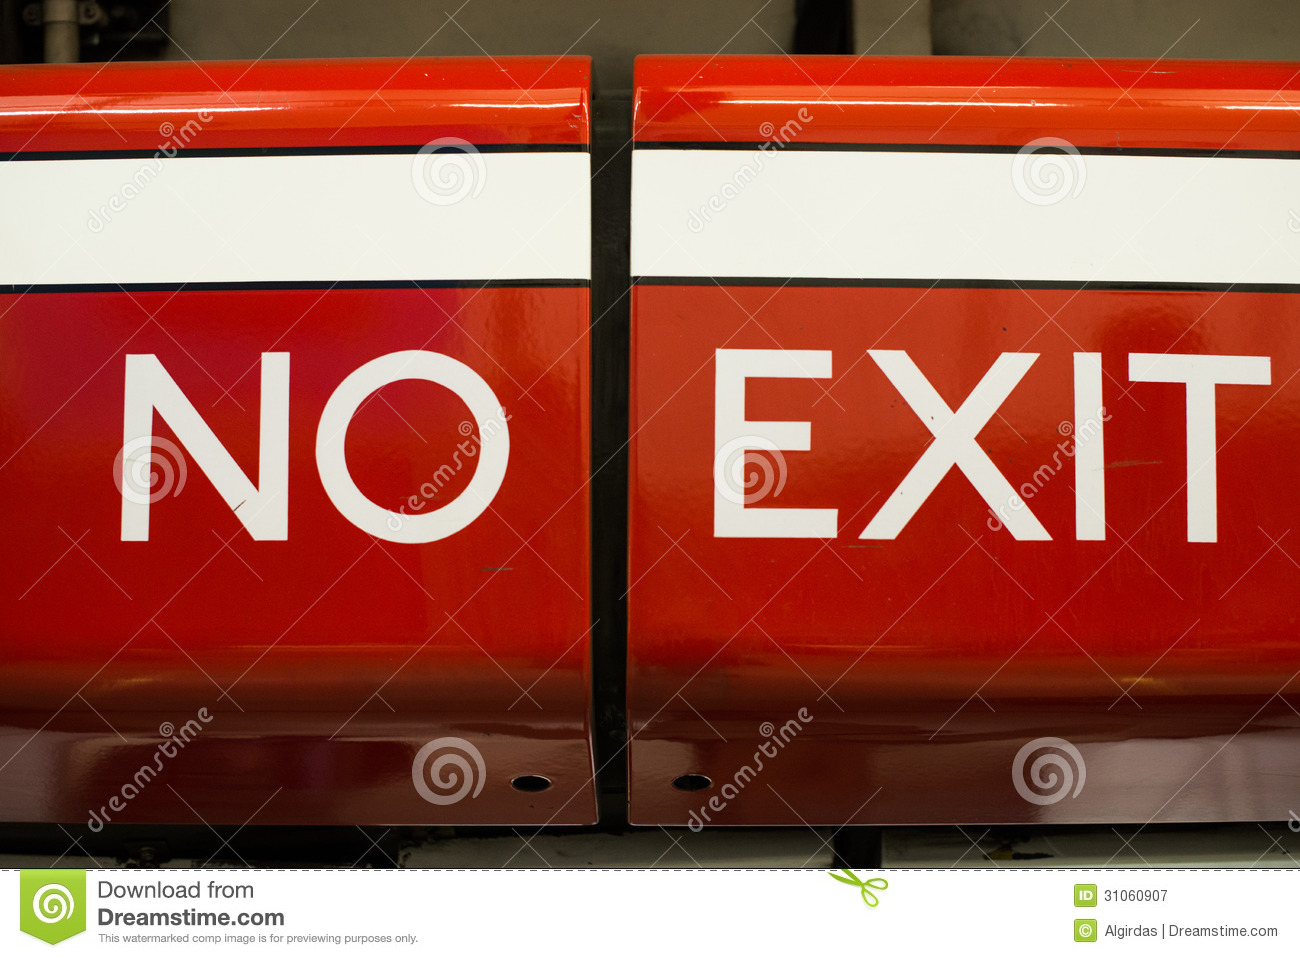 No Exit Sign Royalty Free Stock Photography  Image 31060907. Sql Database Security Best Practices. Erickson Plumbing And Heating. Best Alarm Security System Best Spy Software. Bible Colleges In Michigan Servpro Austin Tx. University Of Maryland Robert H Smith. Is Co2 Heavier Than Air Tamarack Pest Control. Mccarthy Tire Wilkes Barre 2 Unique Catering. Insurance Agent License Georgia